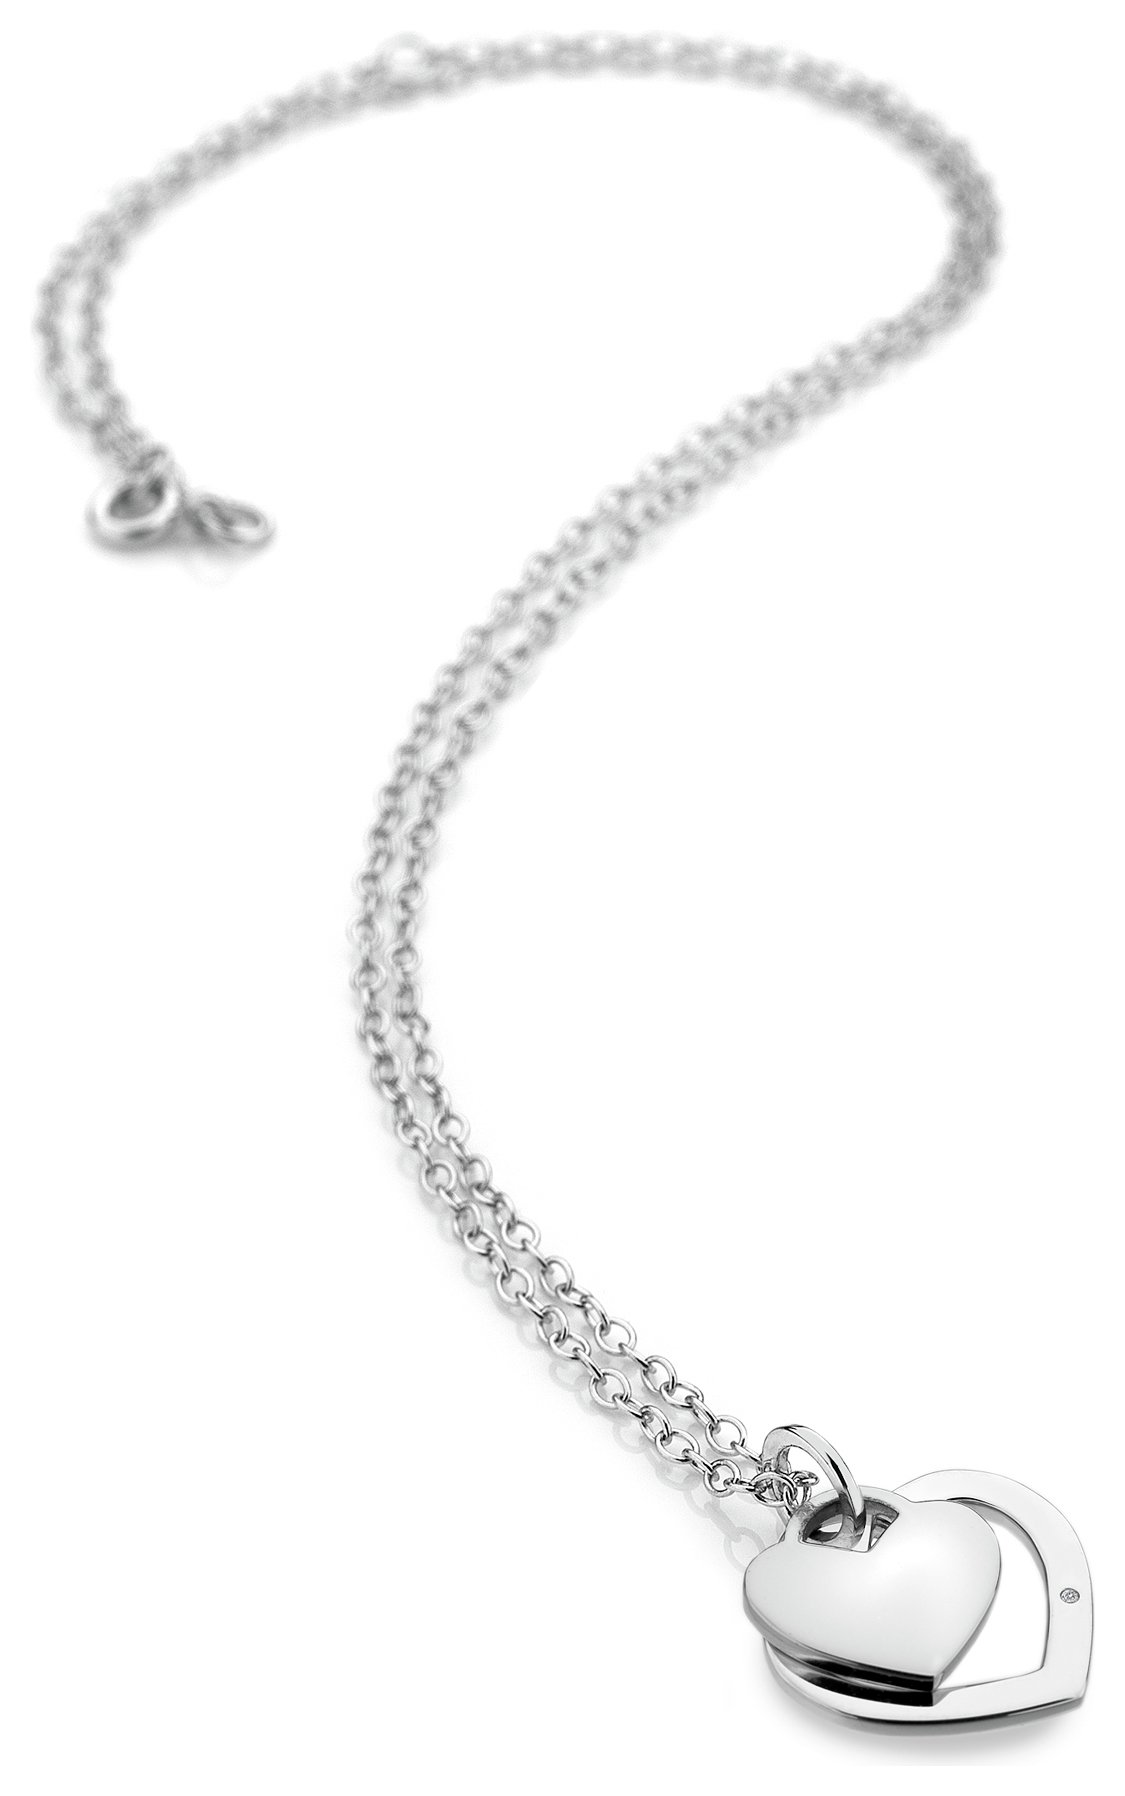 Image of Accents by Hot Diamonds - Silver Double Heart Pendant.